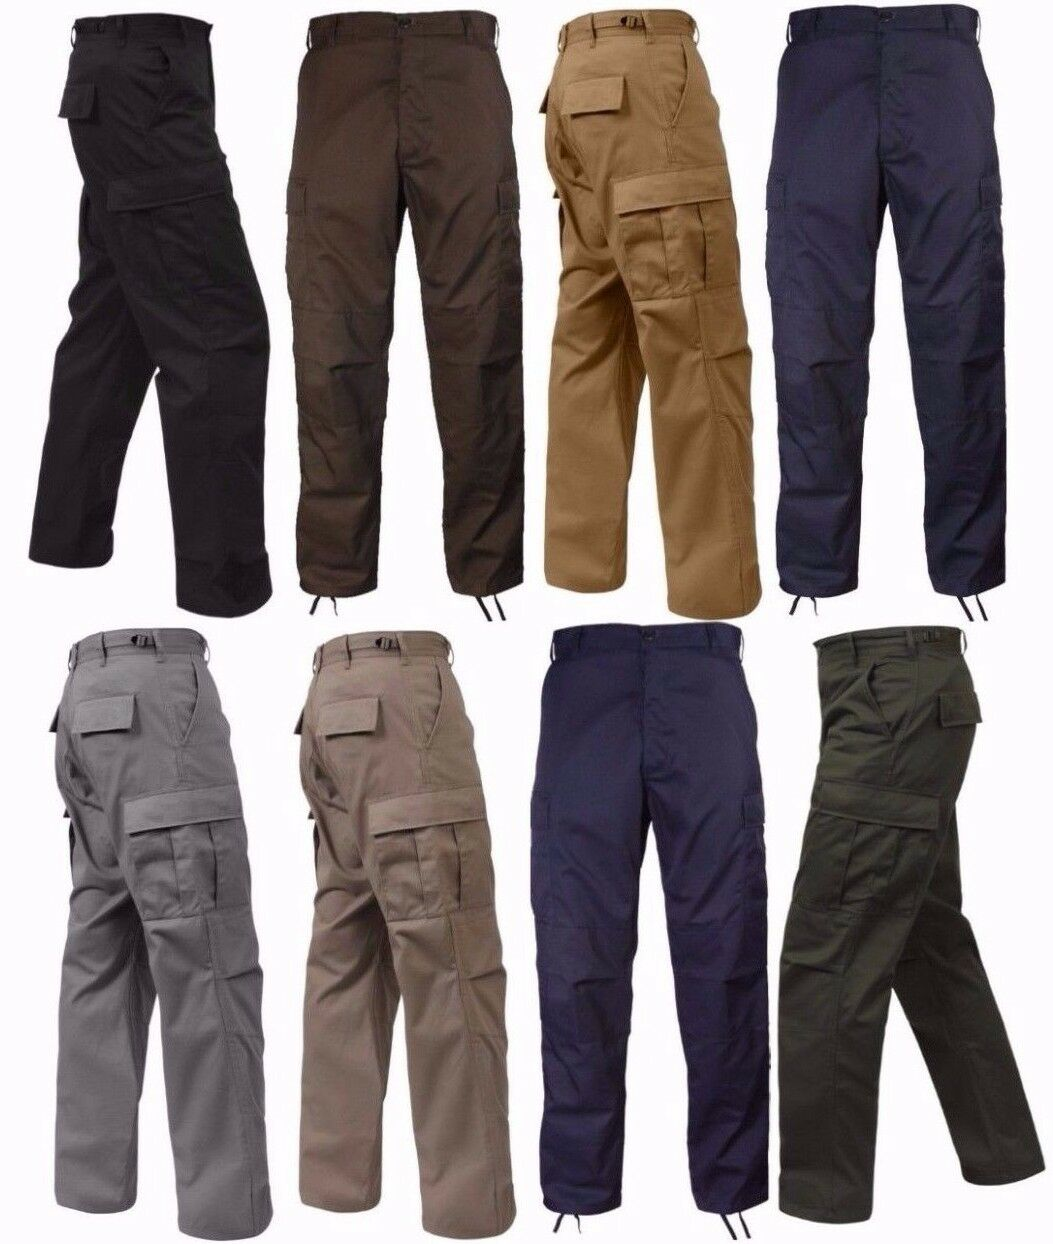 redhco Military Tactical BDU Fatigue Pants - Solid color - Sizes  XS-2XL